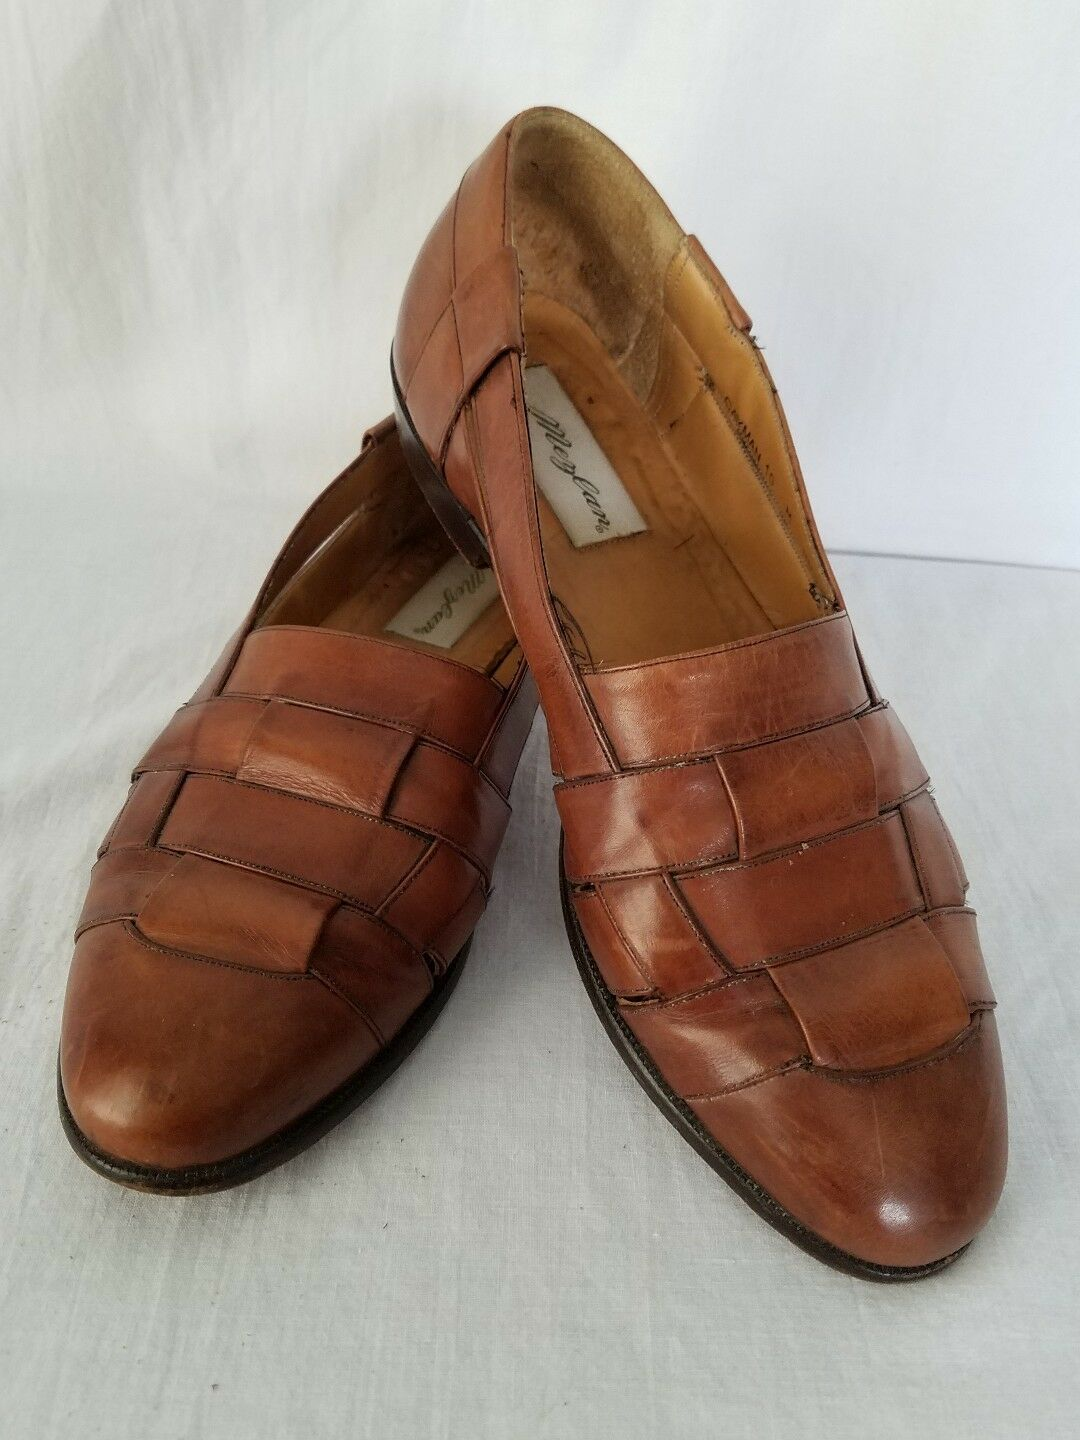 Mezlan Cayman Brown Leather Weave Loafer Made In Spain Mens Size 10 M